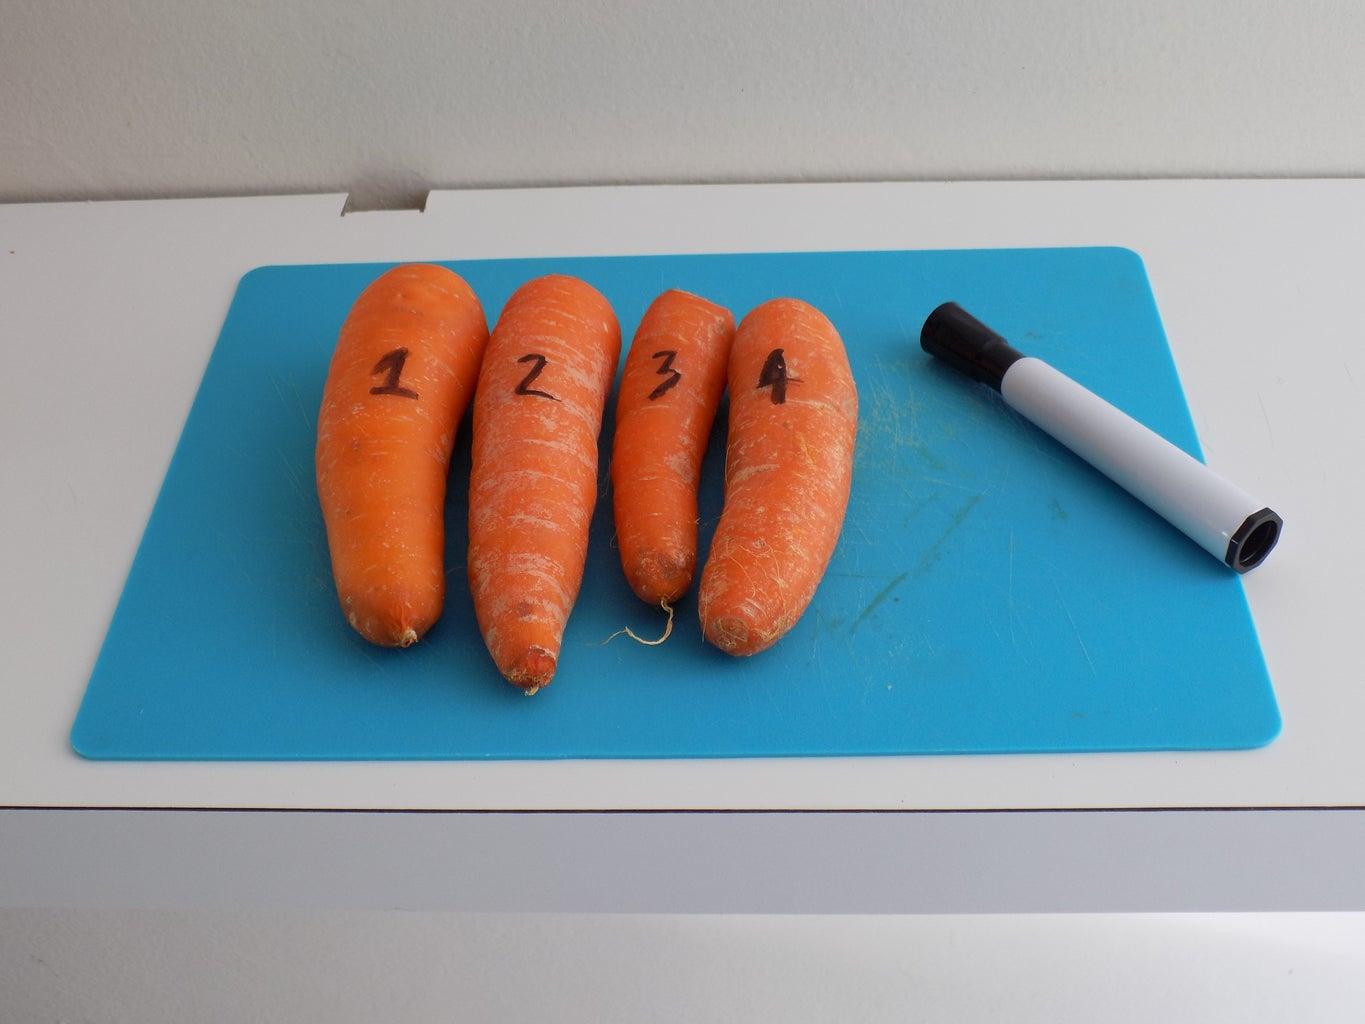 Step 2: Drill the Carrots